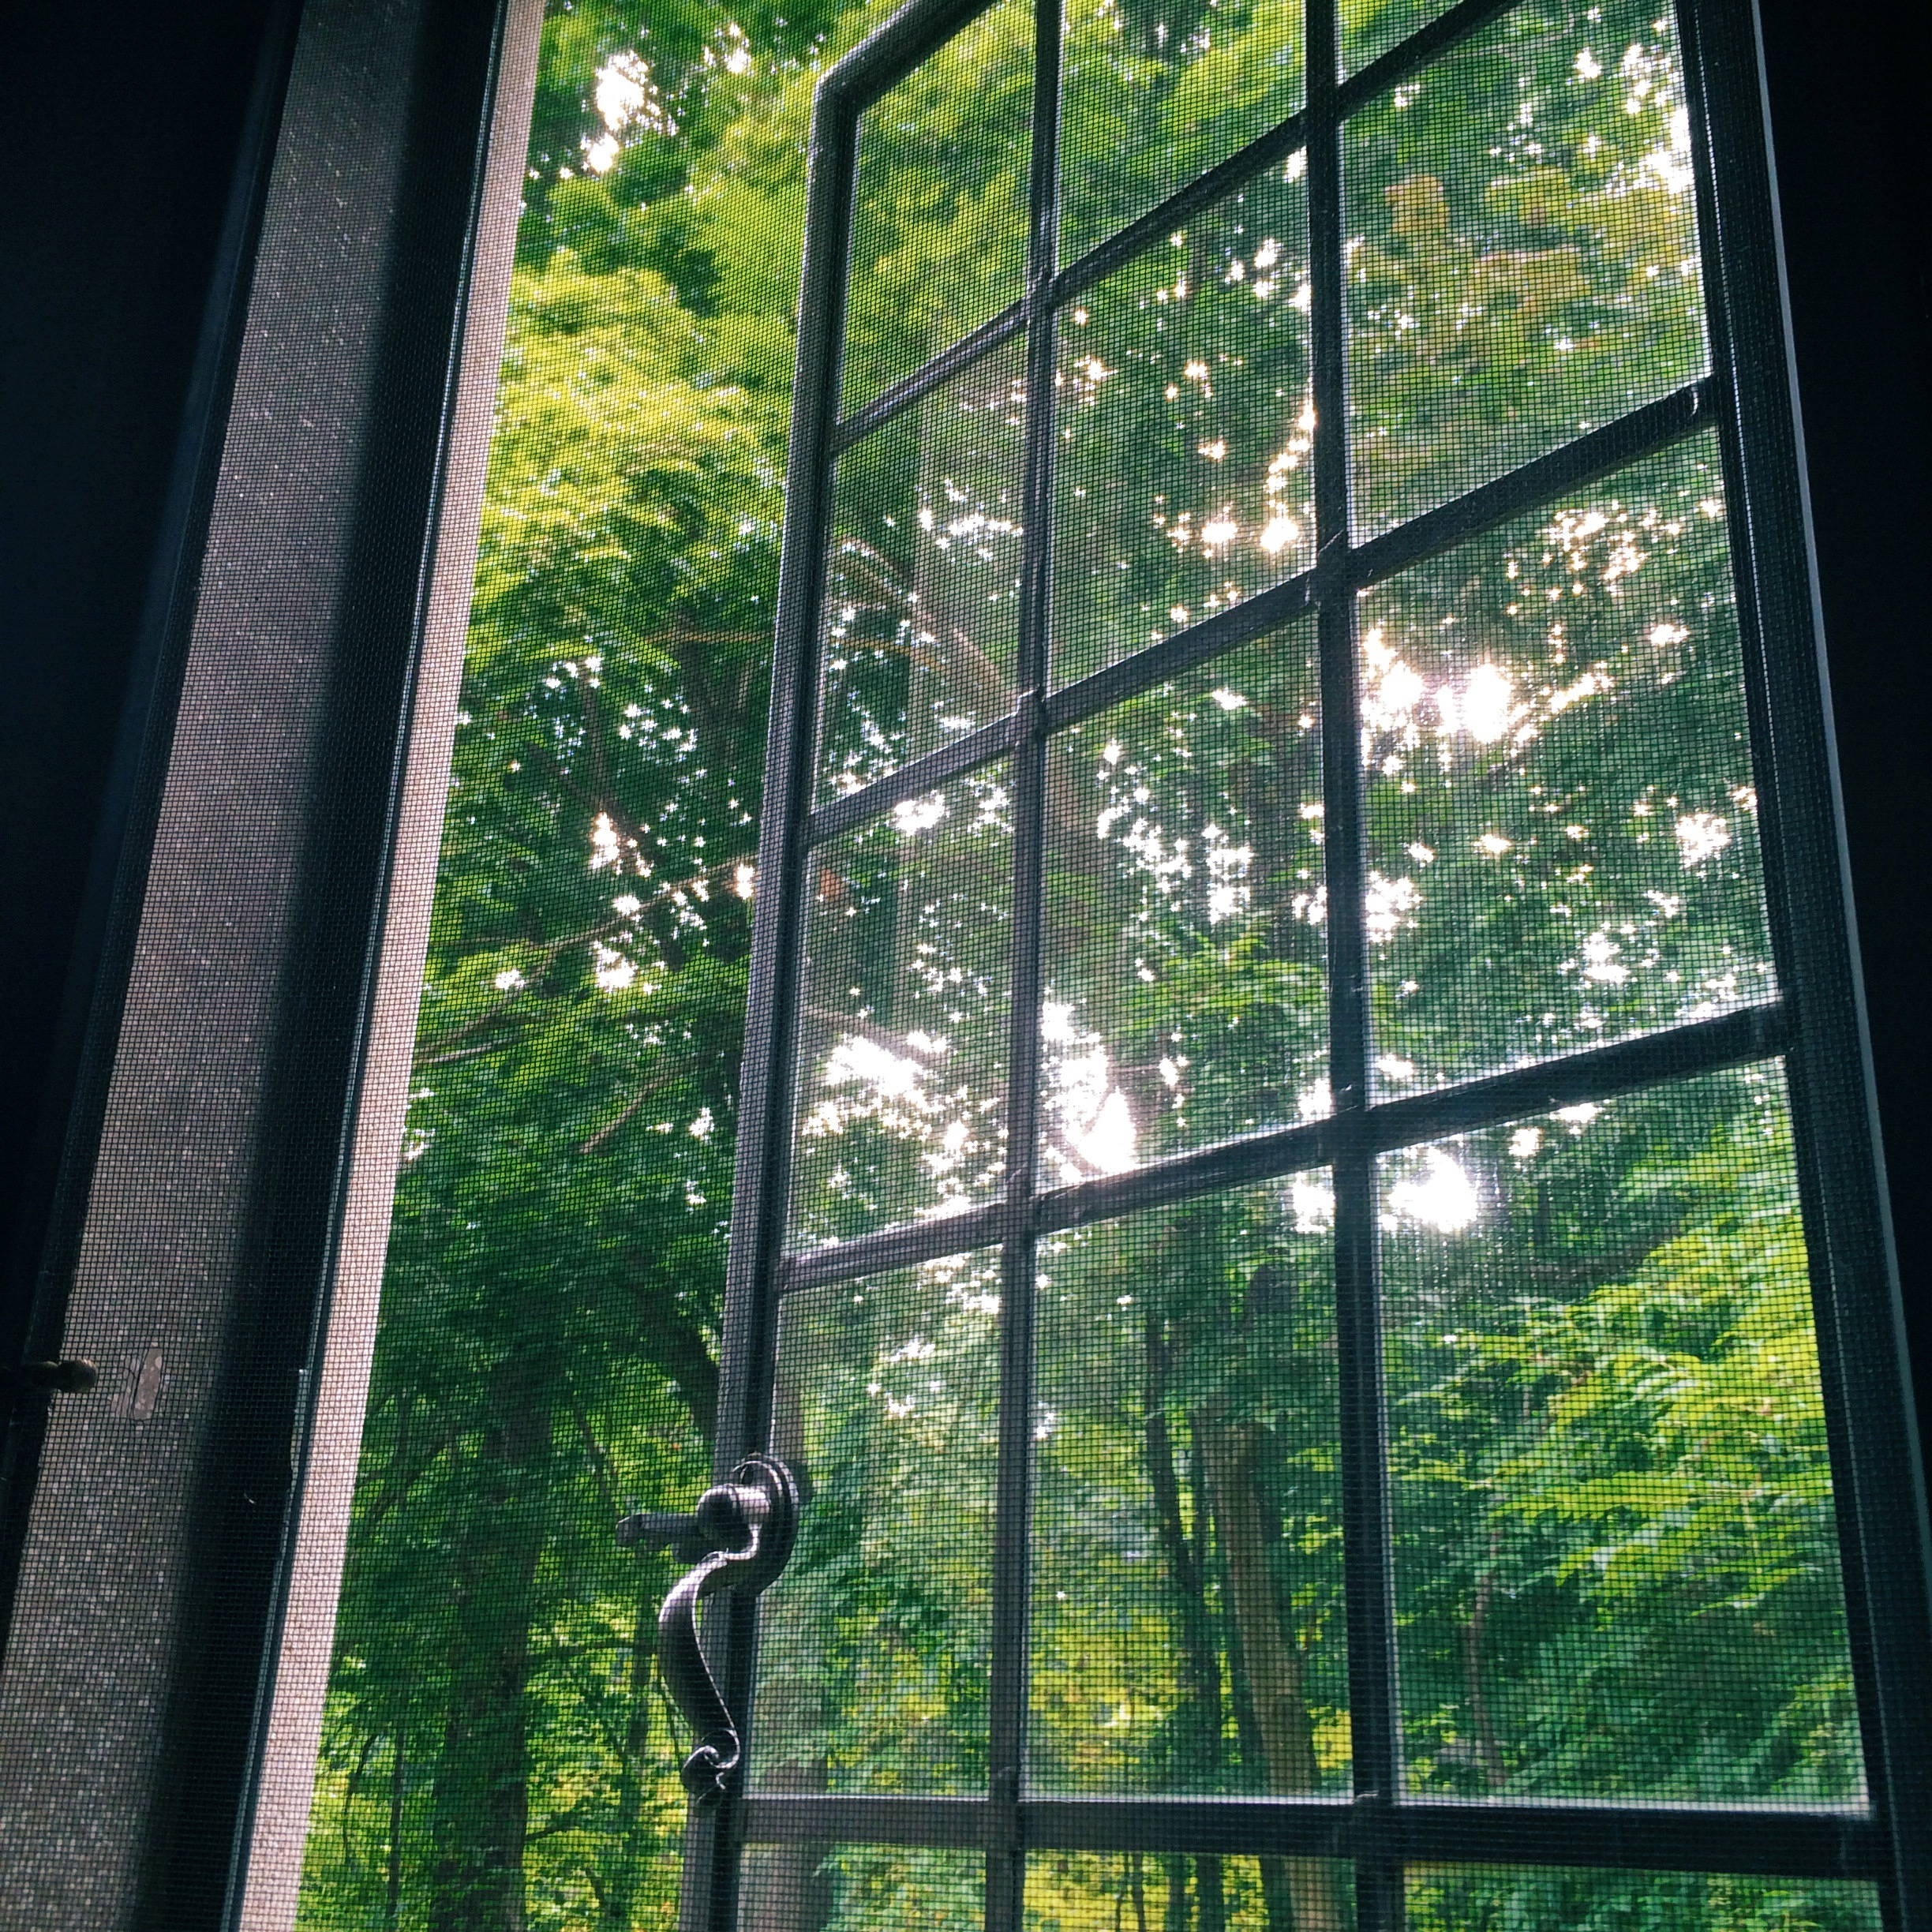 these cast iron windows are beautiful but don't really keep out the bugs. it's still a lovely view of trees and the lake.